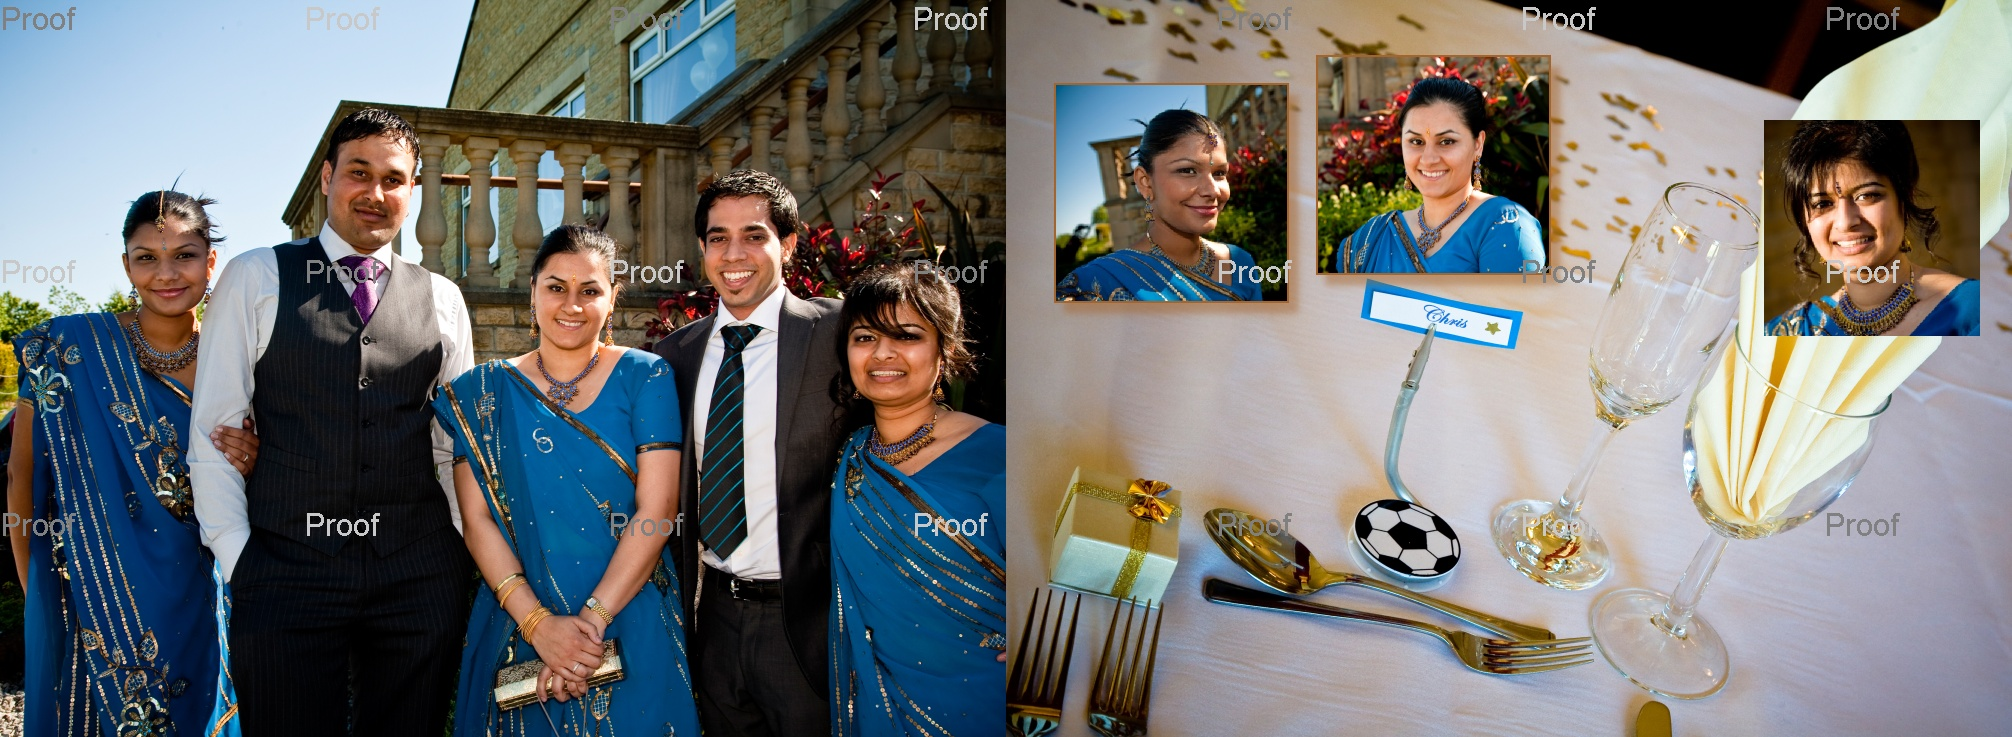 Asian bridesmaids in blue saris - at wedding reception - pages 42-43 of wedding storybook album